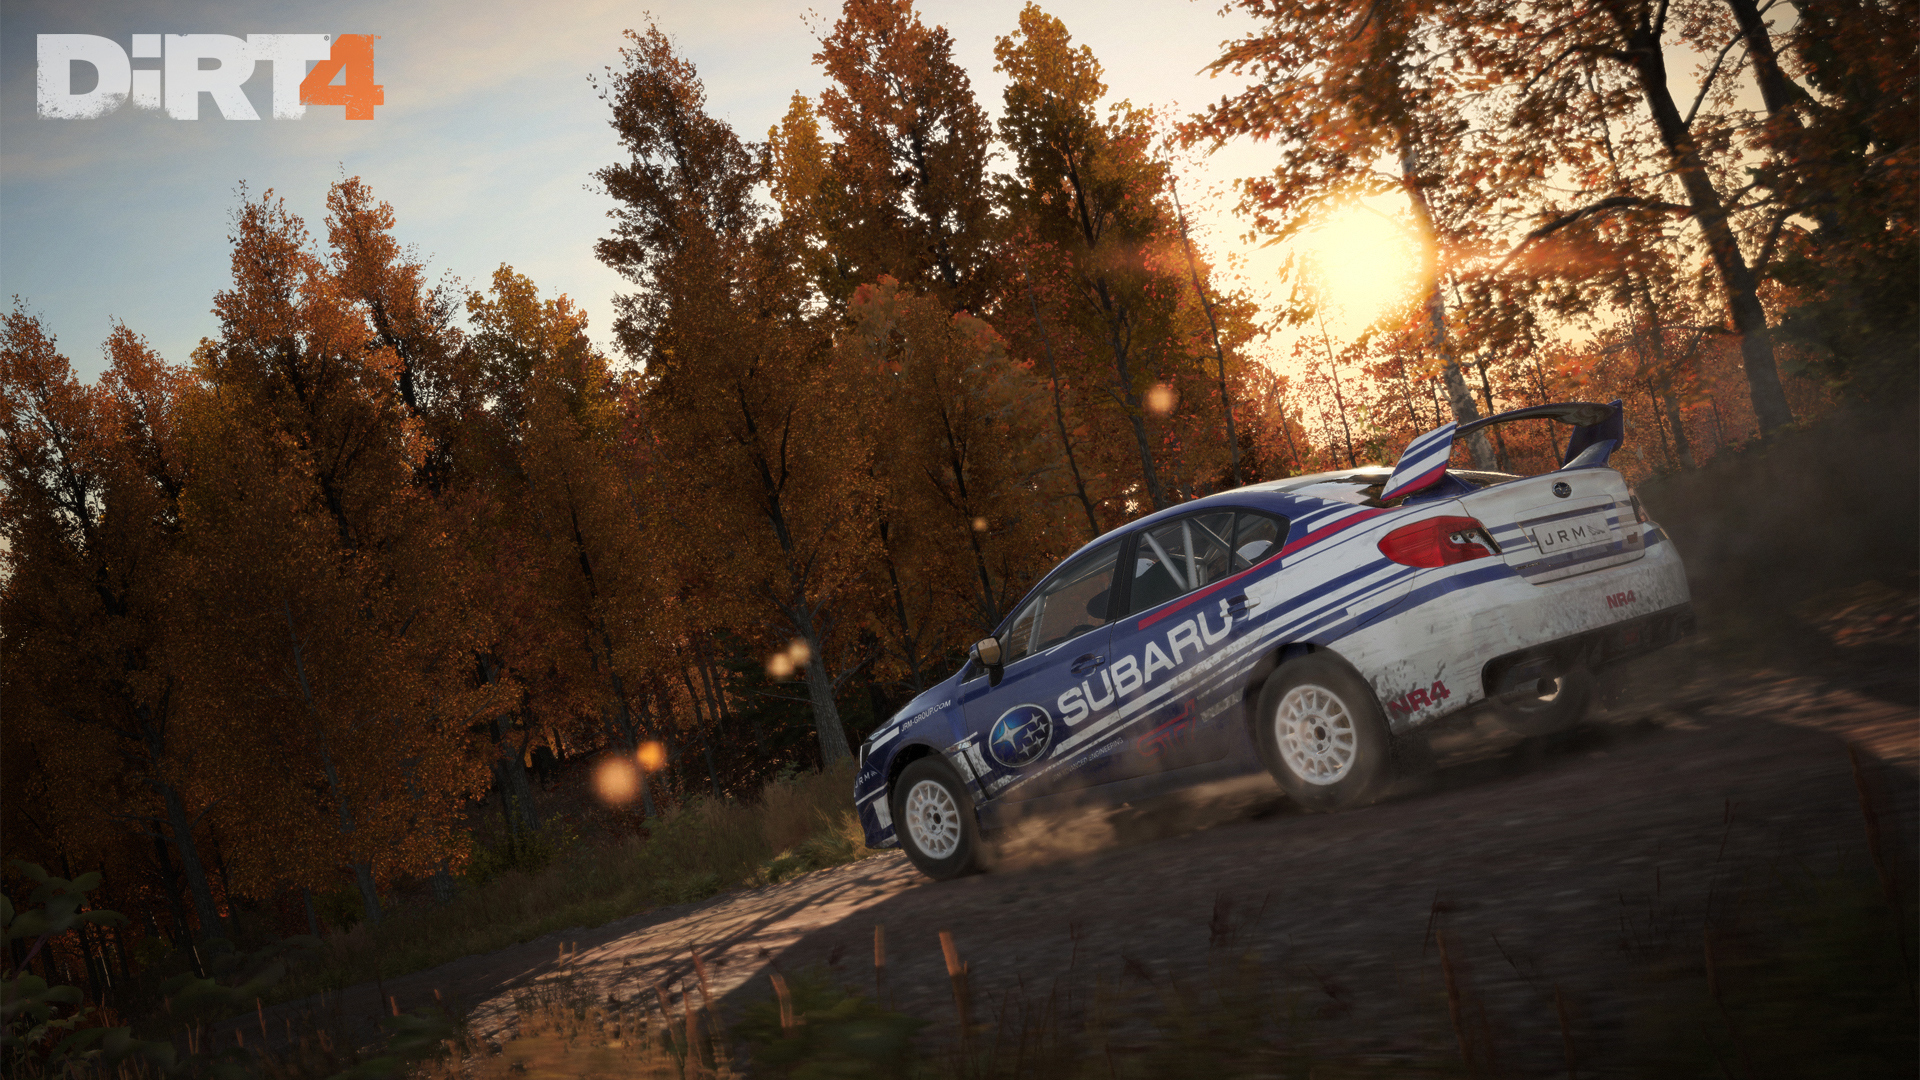 DiRT4 - screen - Subaru - USA